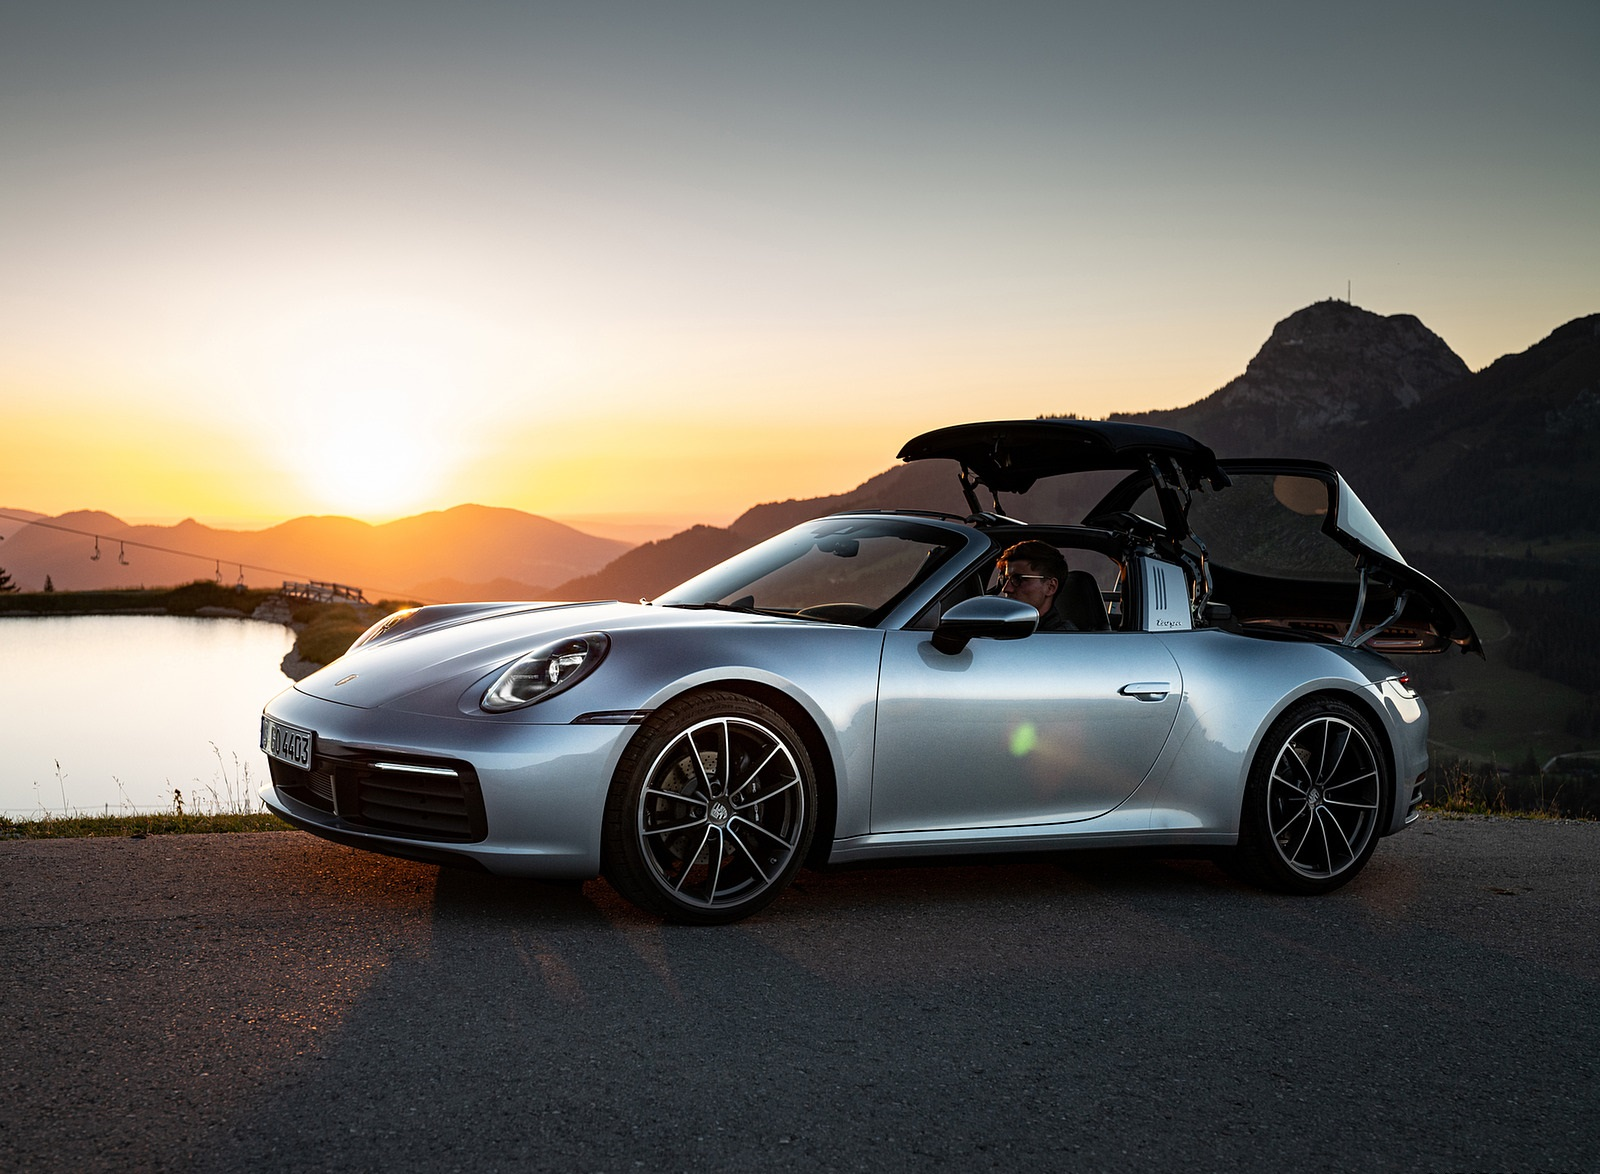 2021 Porsche 911 Targa 4 (Color: Dolomite Silver Metallic) Front Three-Quarter Wallpapers (8)